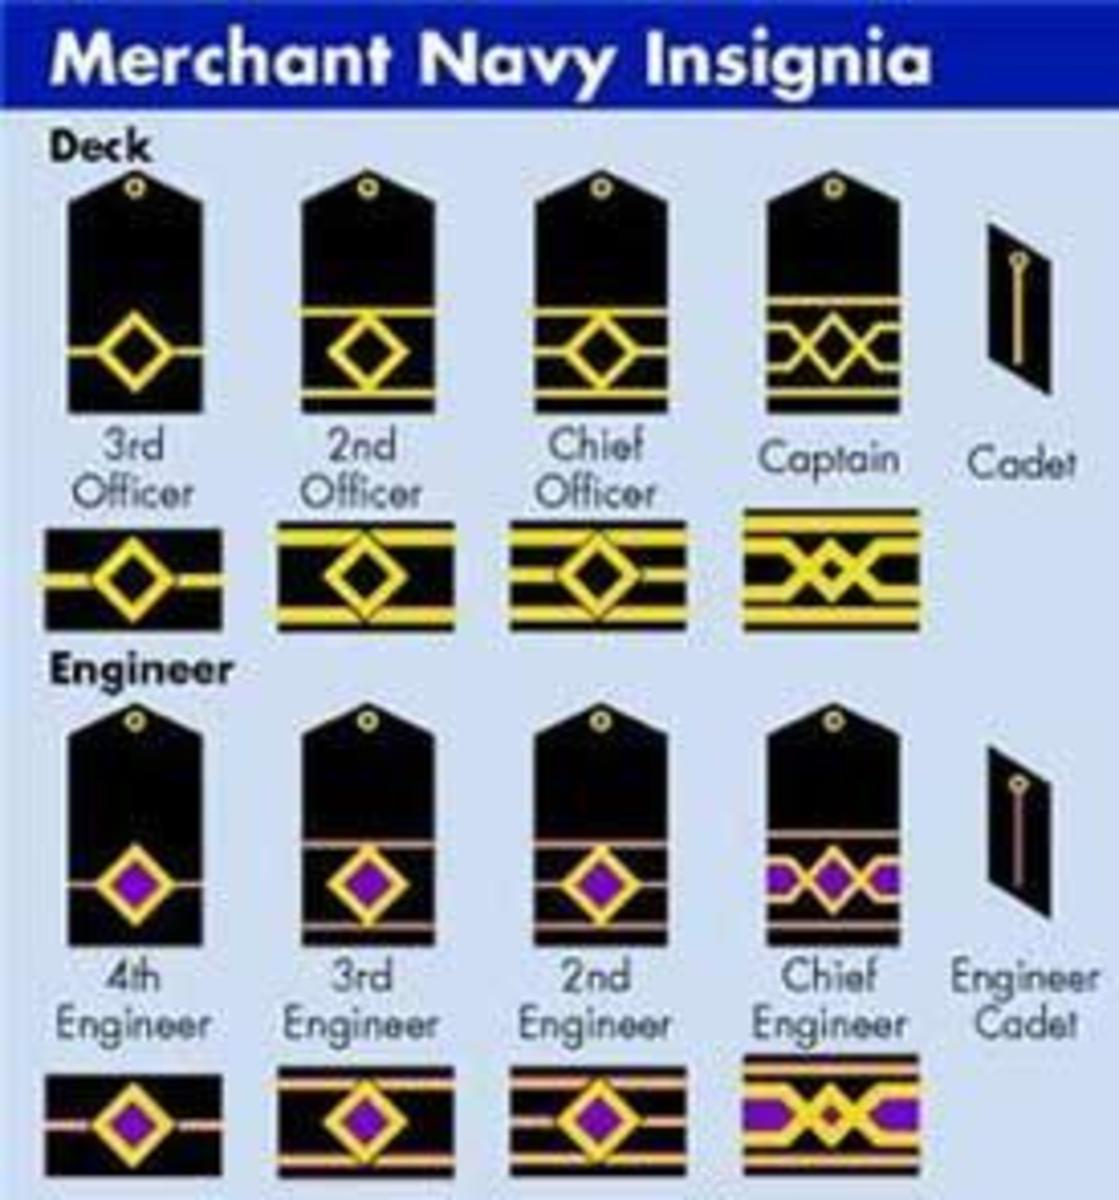 Ranks of Seafarers